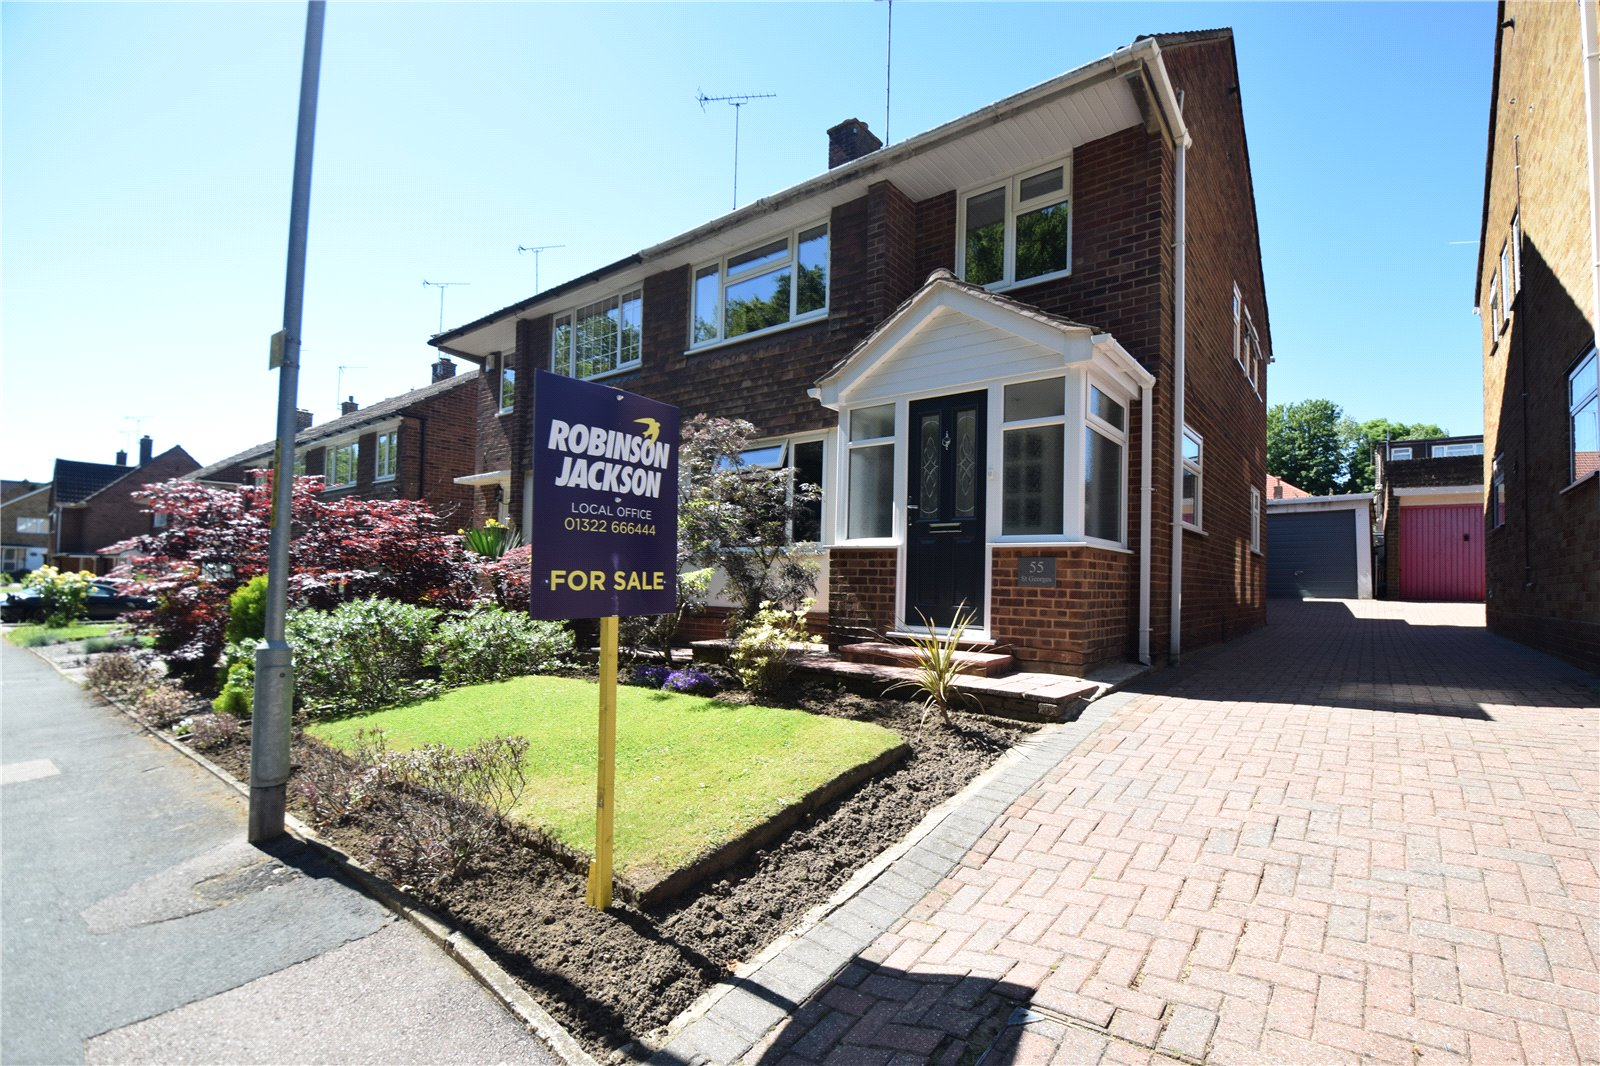 St Georges Road, Swanley, BR8